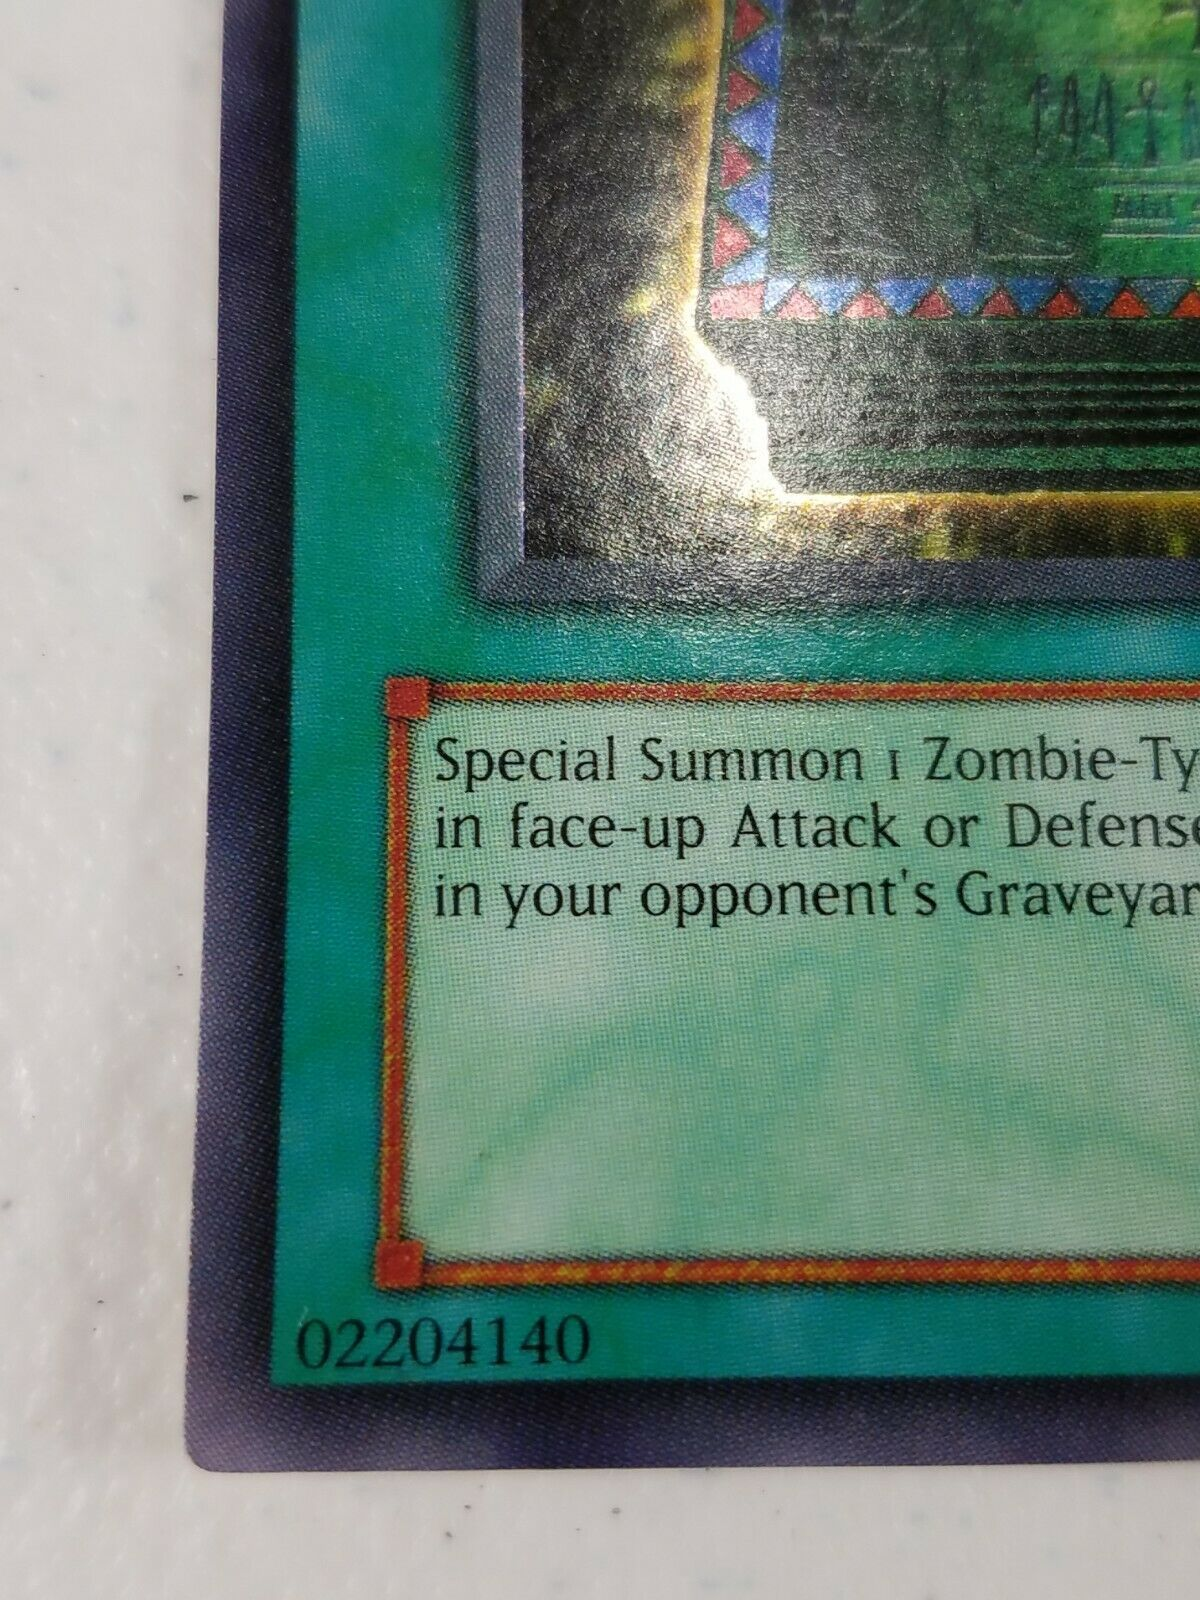 Yu-gi-oh! Trading Card - Book of Life - PGD-033 - Super Rare